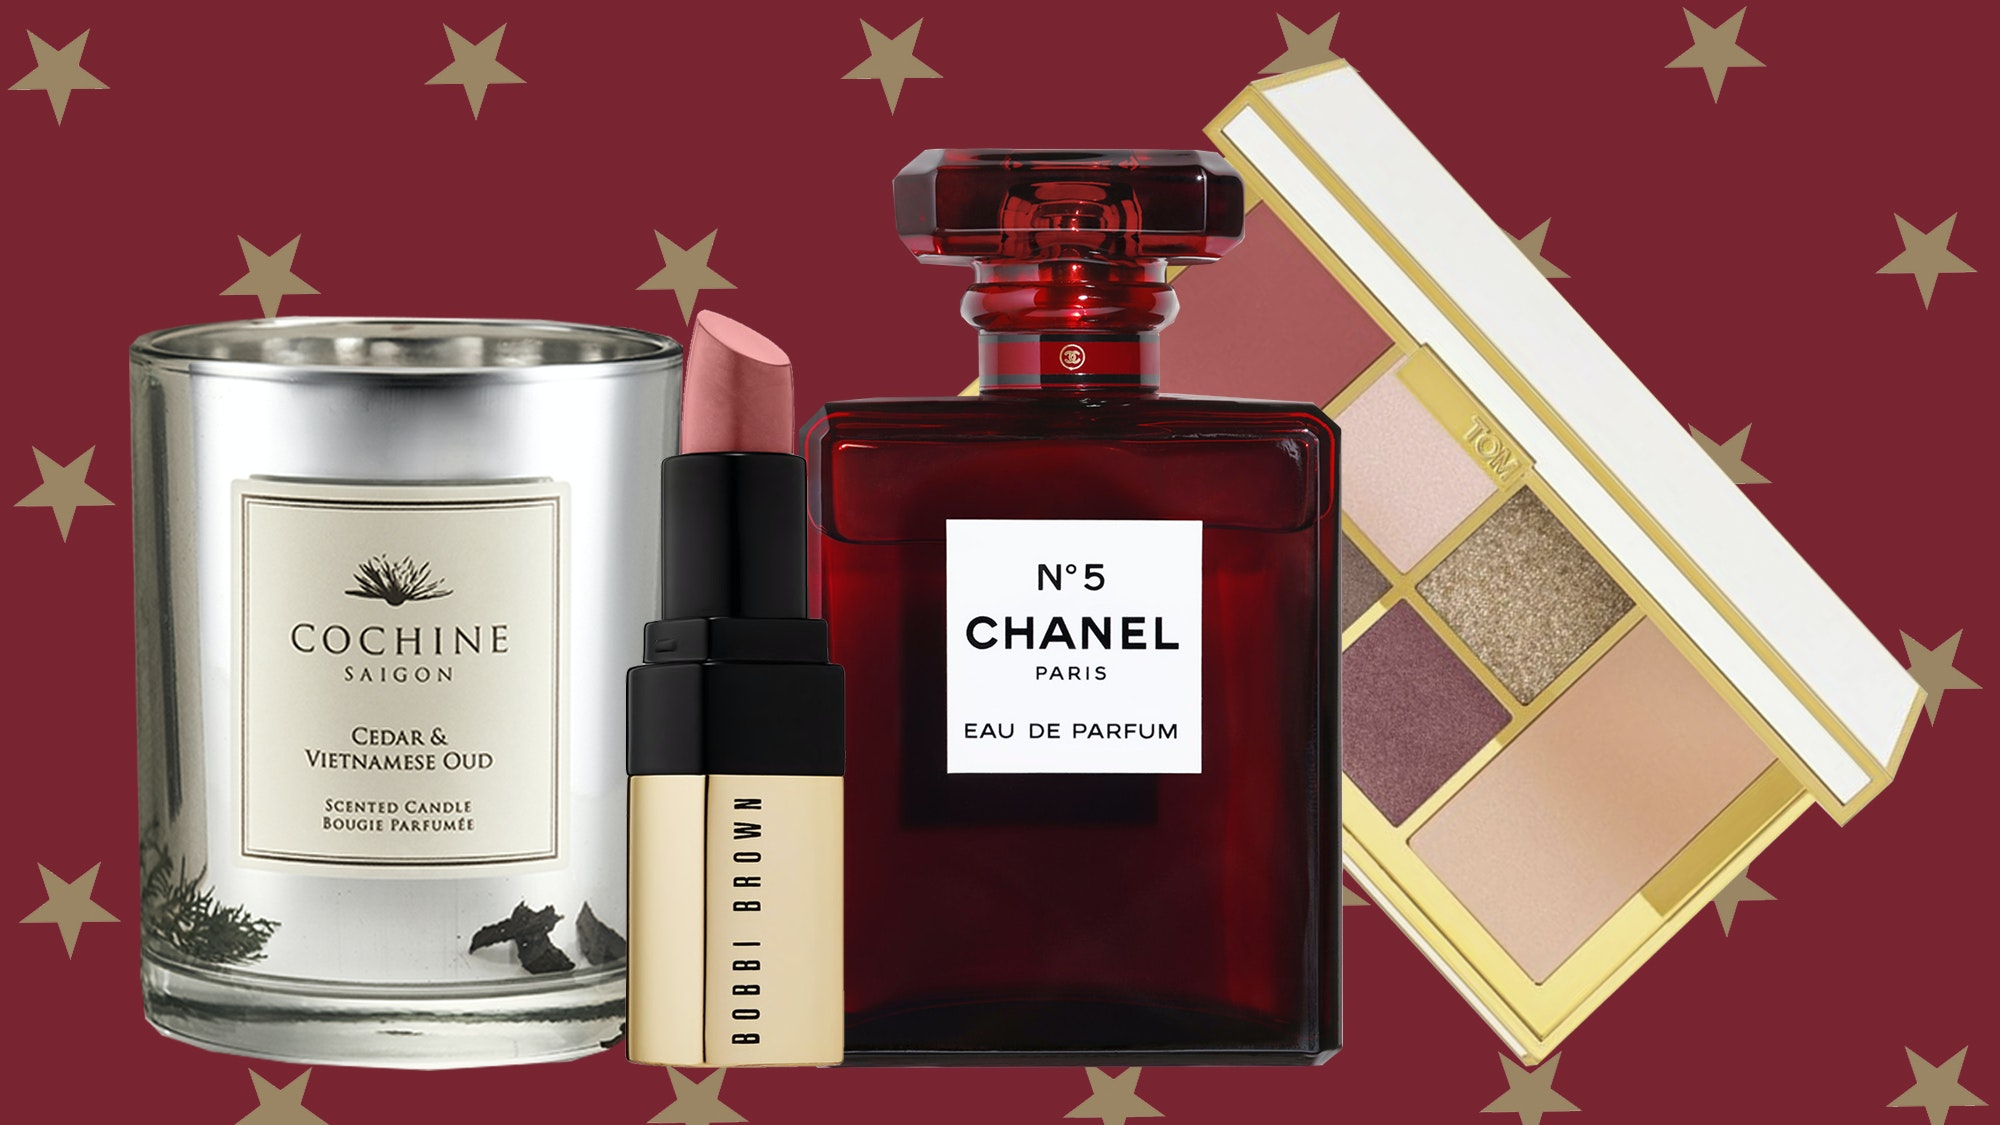 10 Beauty Products, Skincare Formulas, and More Gifts to Treat Yourself With This Holiday Season